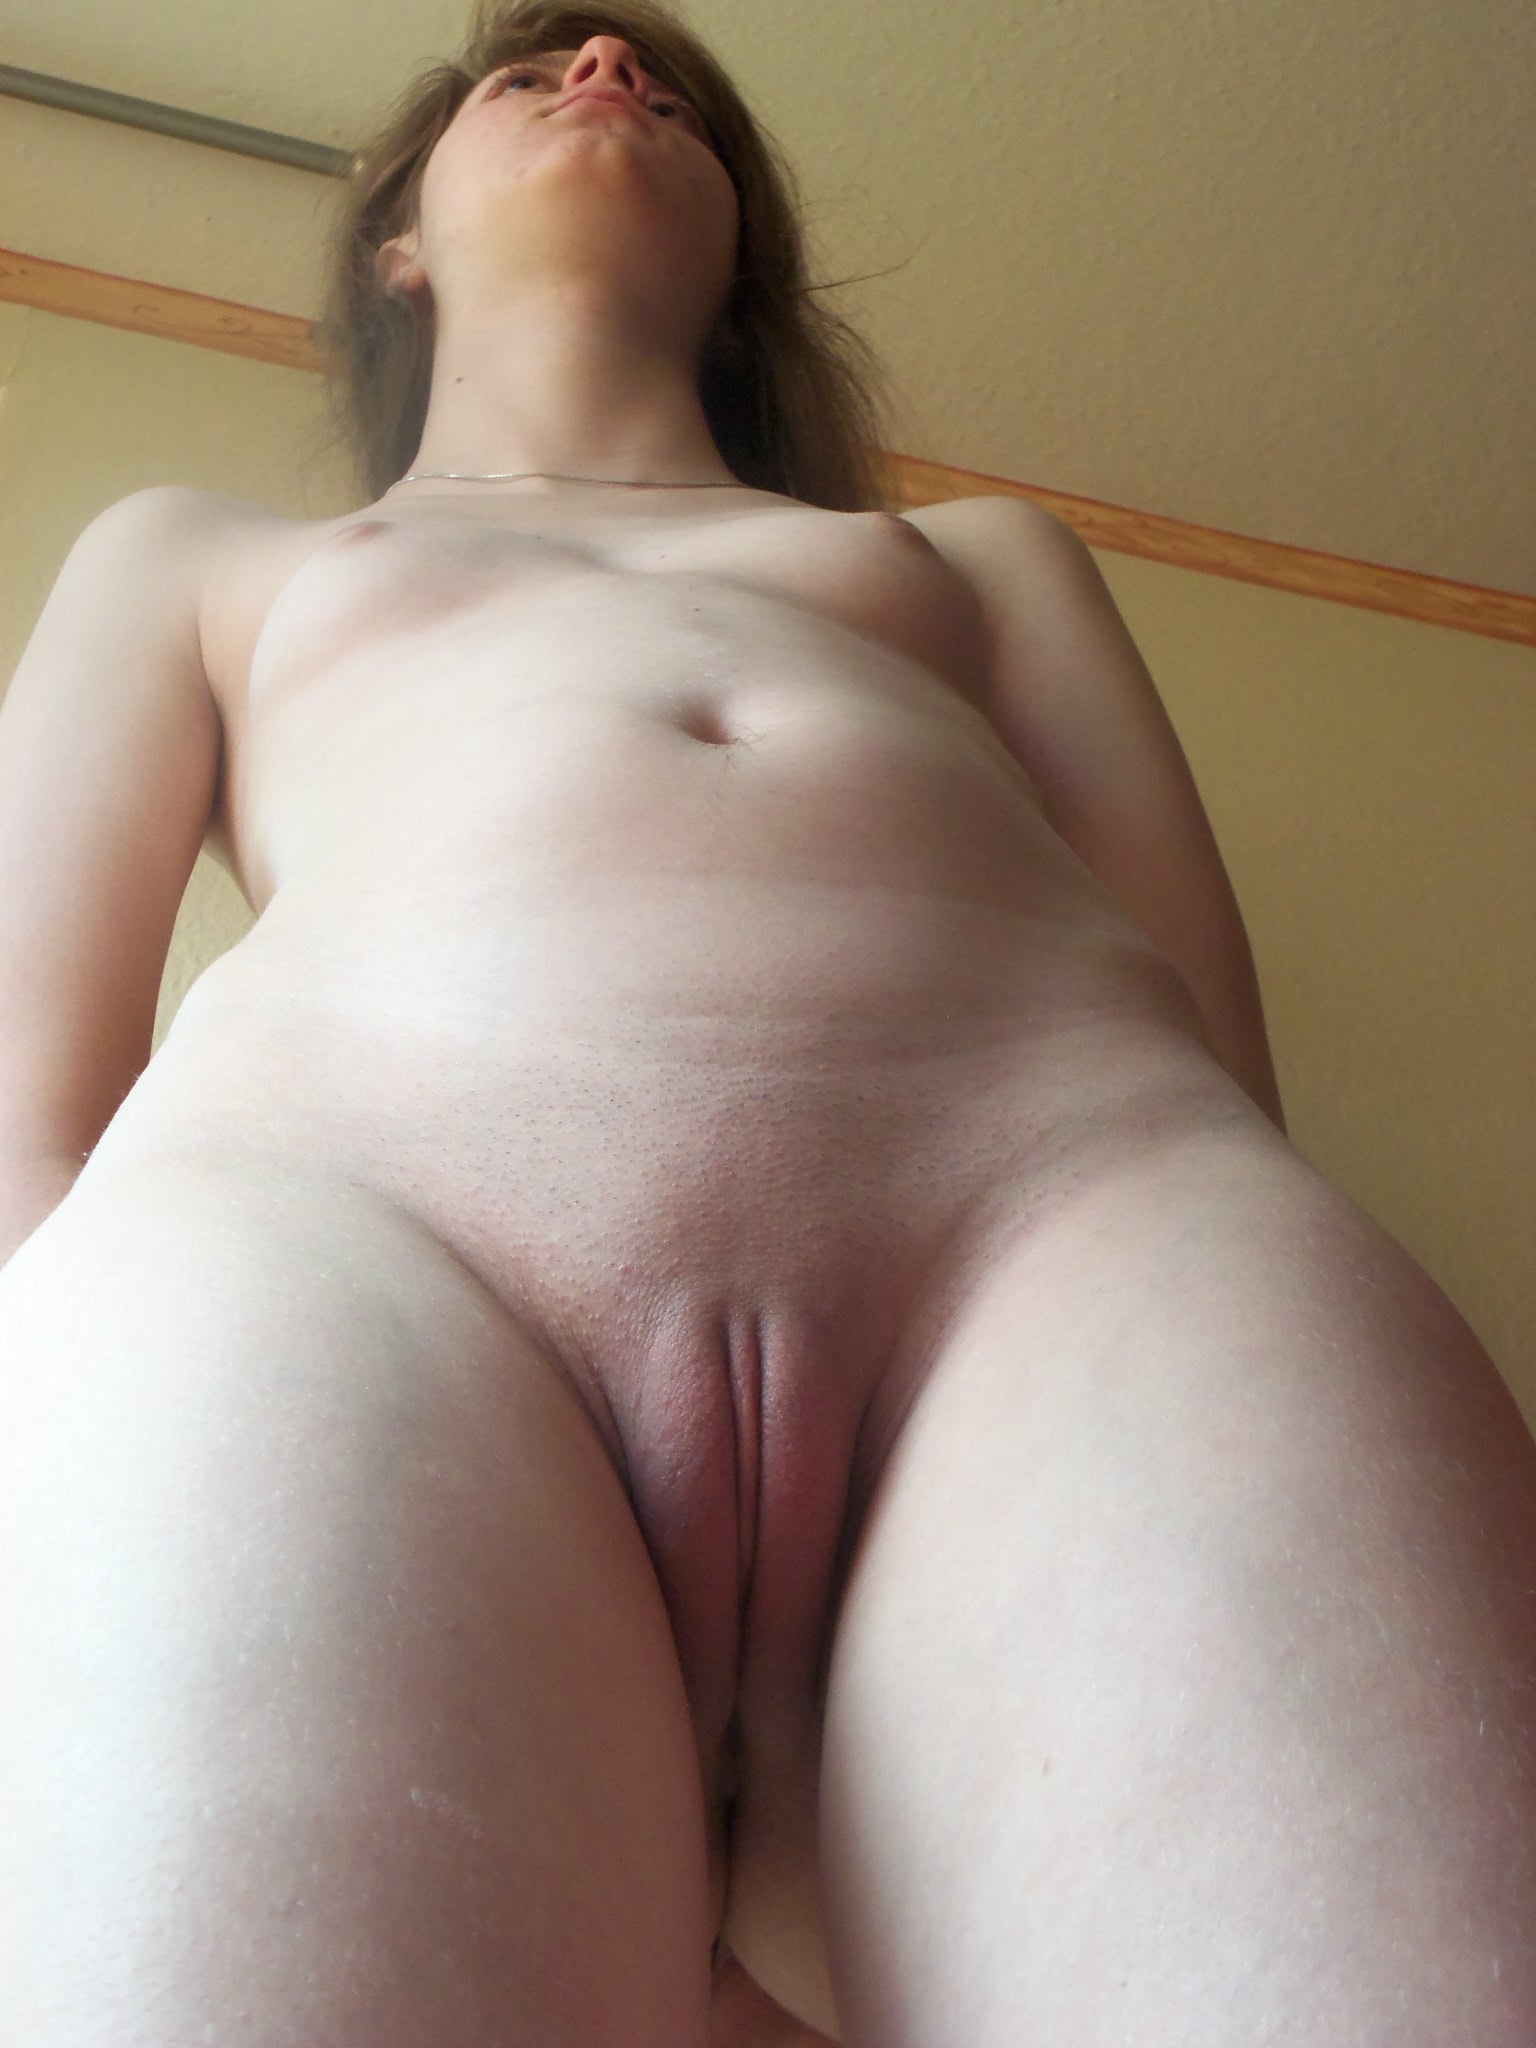 small young nudist girl